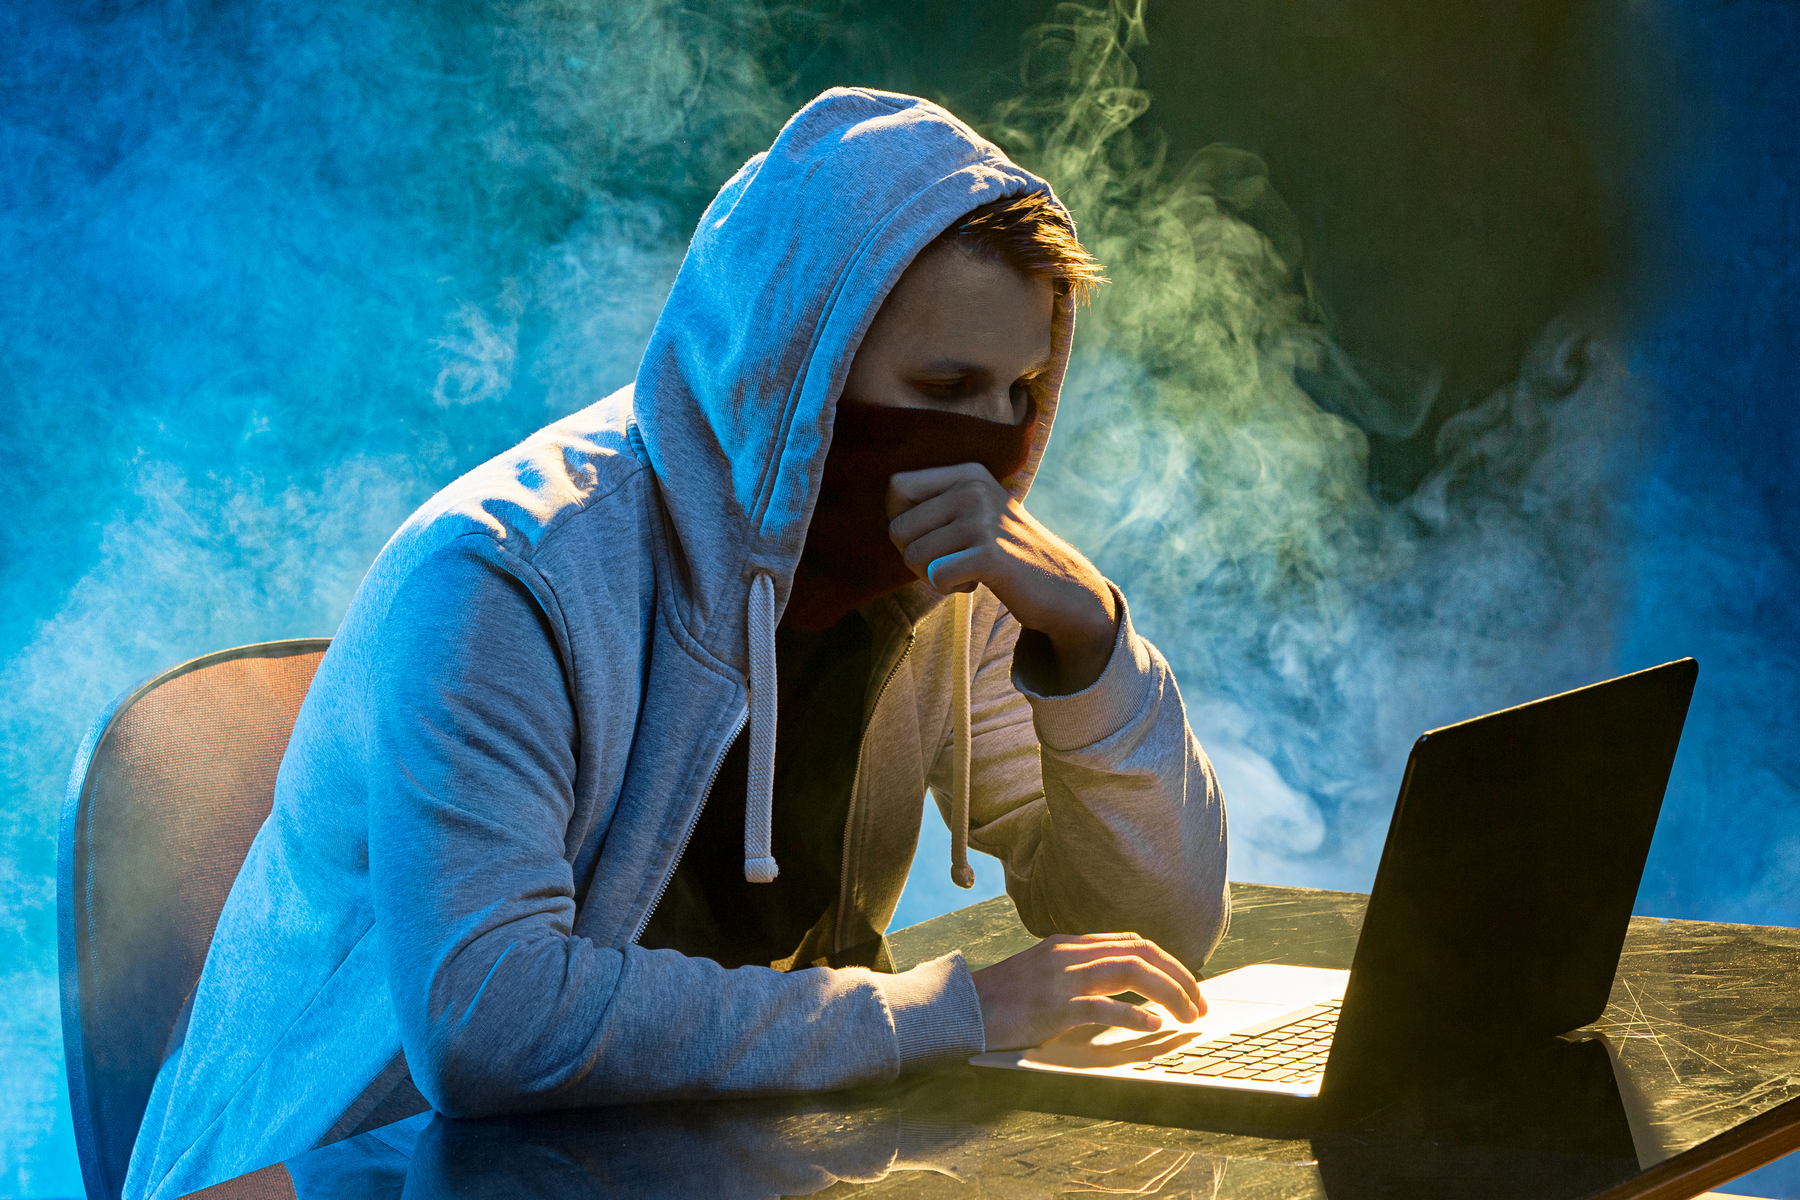 hooded-computer-hacker-stealing-information-with-p9u3l2p.JPG